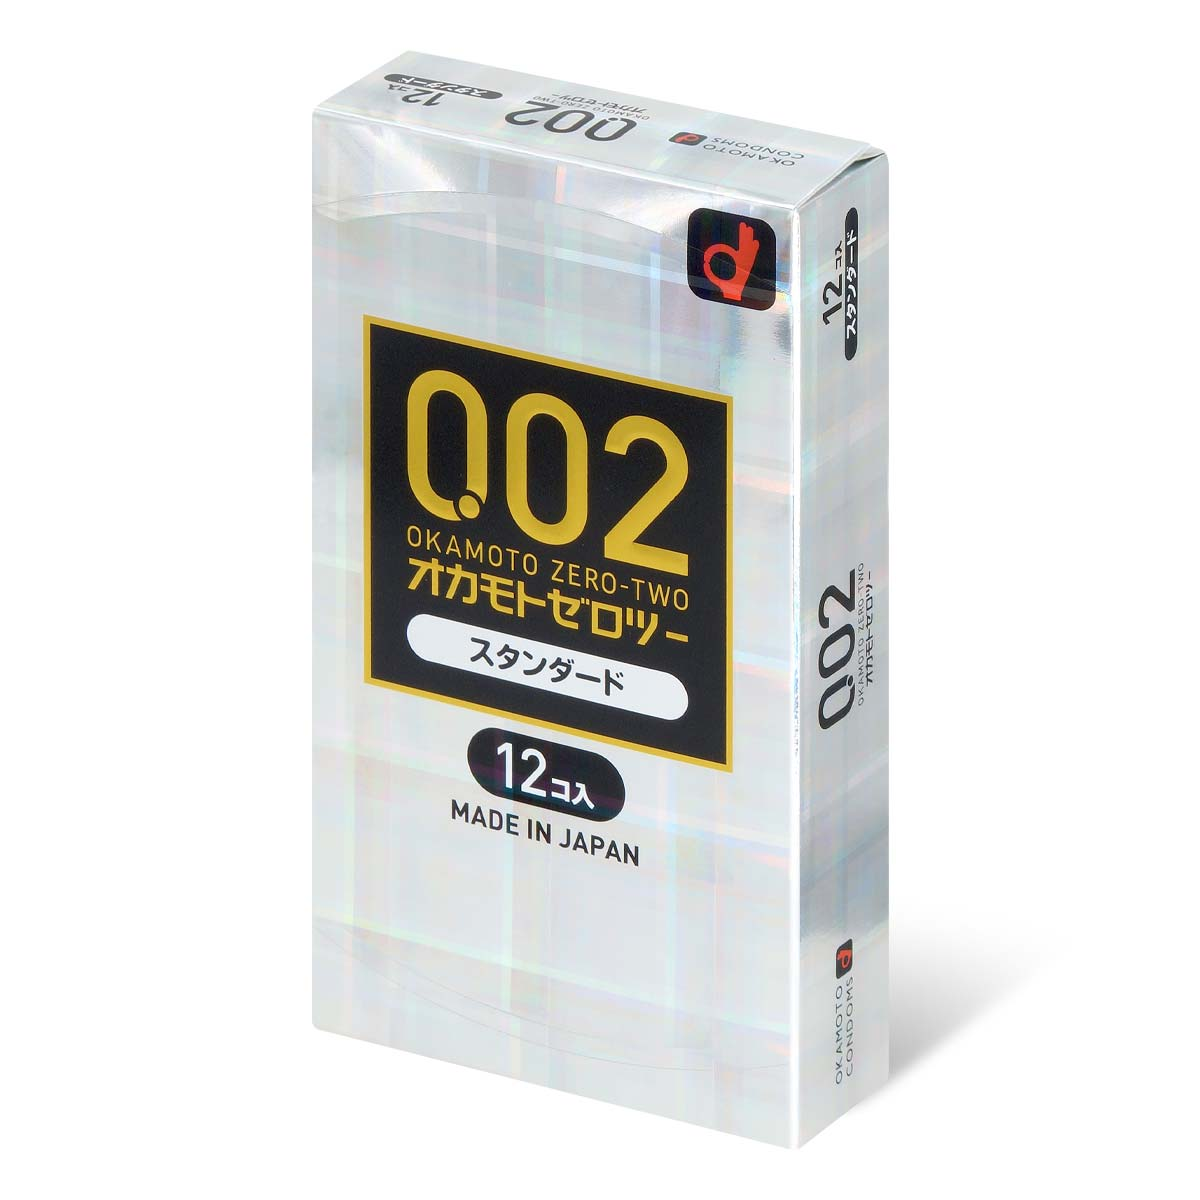 Okamoto Unified Thinness 0.02EX (Japan Edition) 12's Pack PU Condom